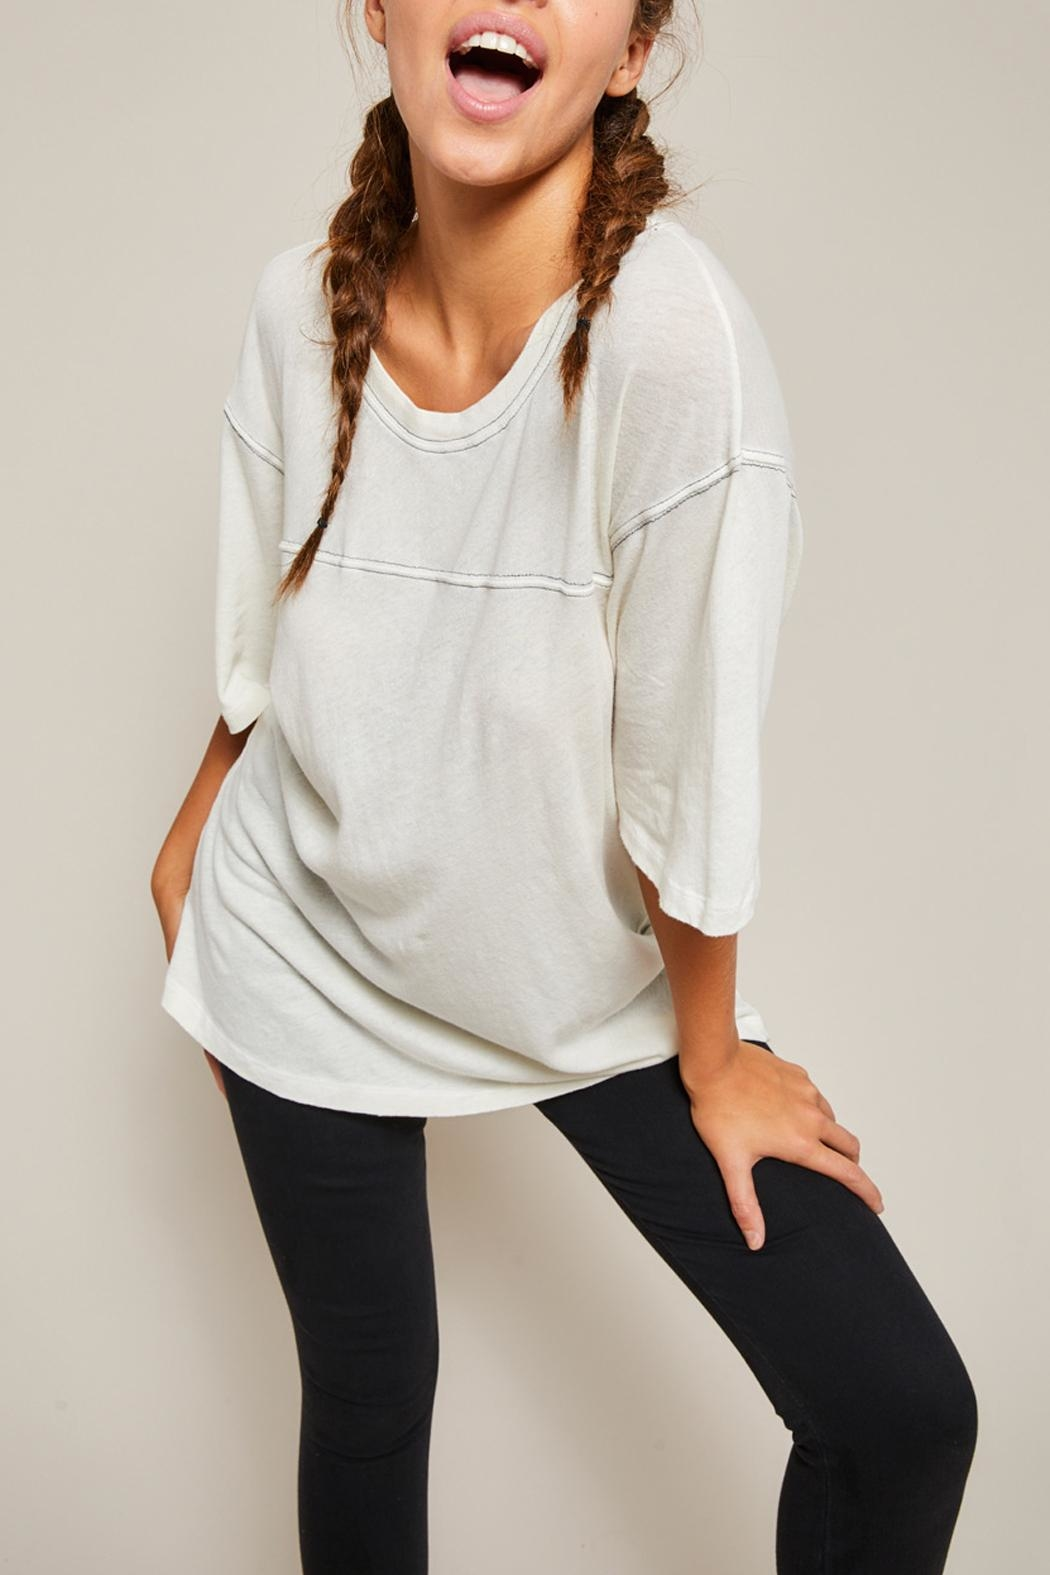 All Things Fabulous Horizon Jersey Tee - Back Cropped Image